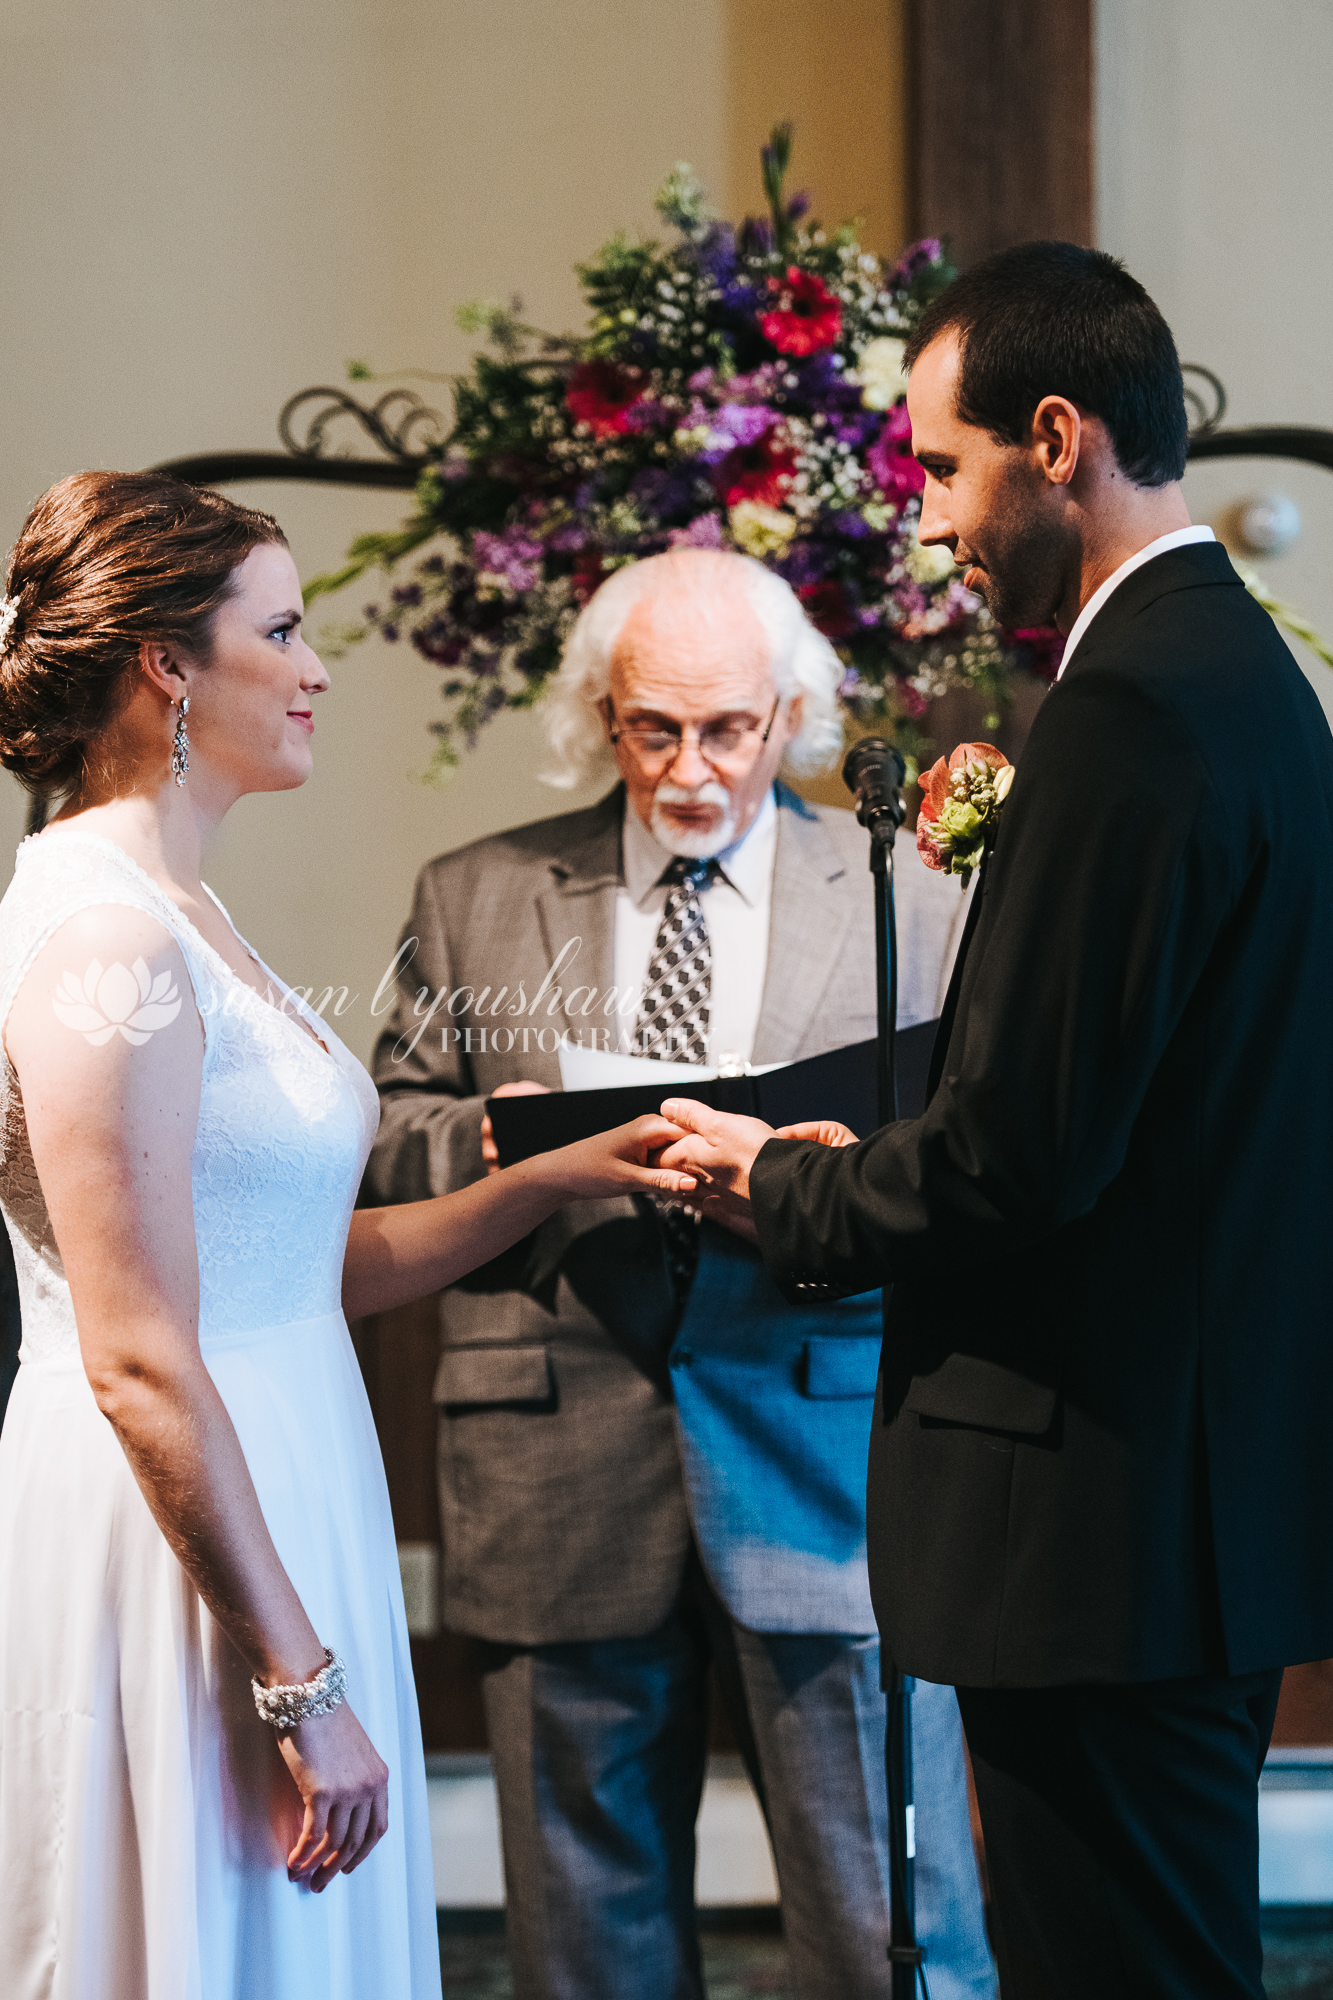 Adena and  Erik Wedding 05-17-2019 SLY Photography-91.jpg